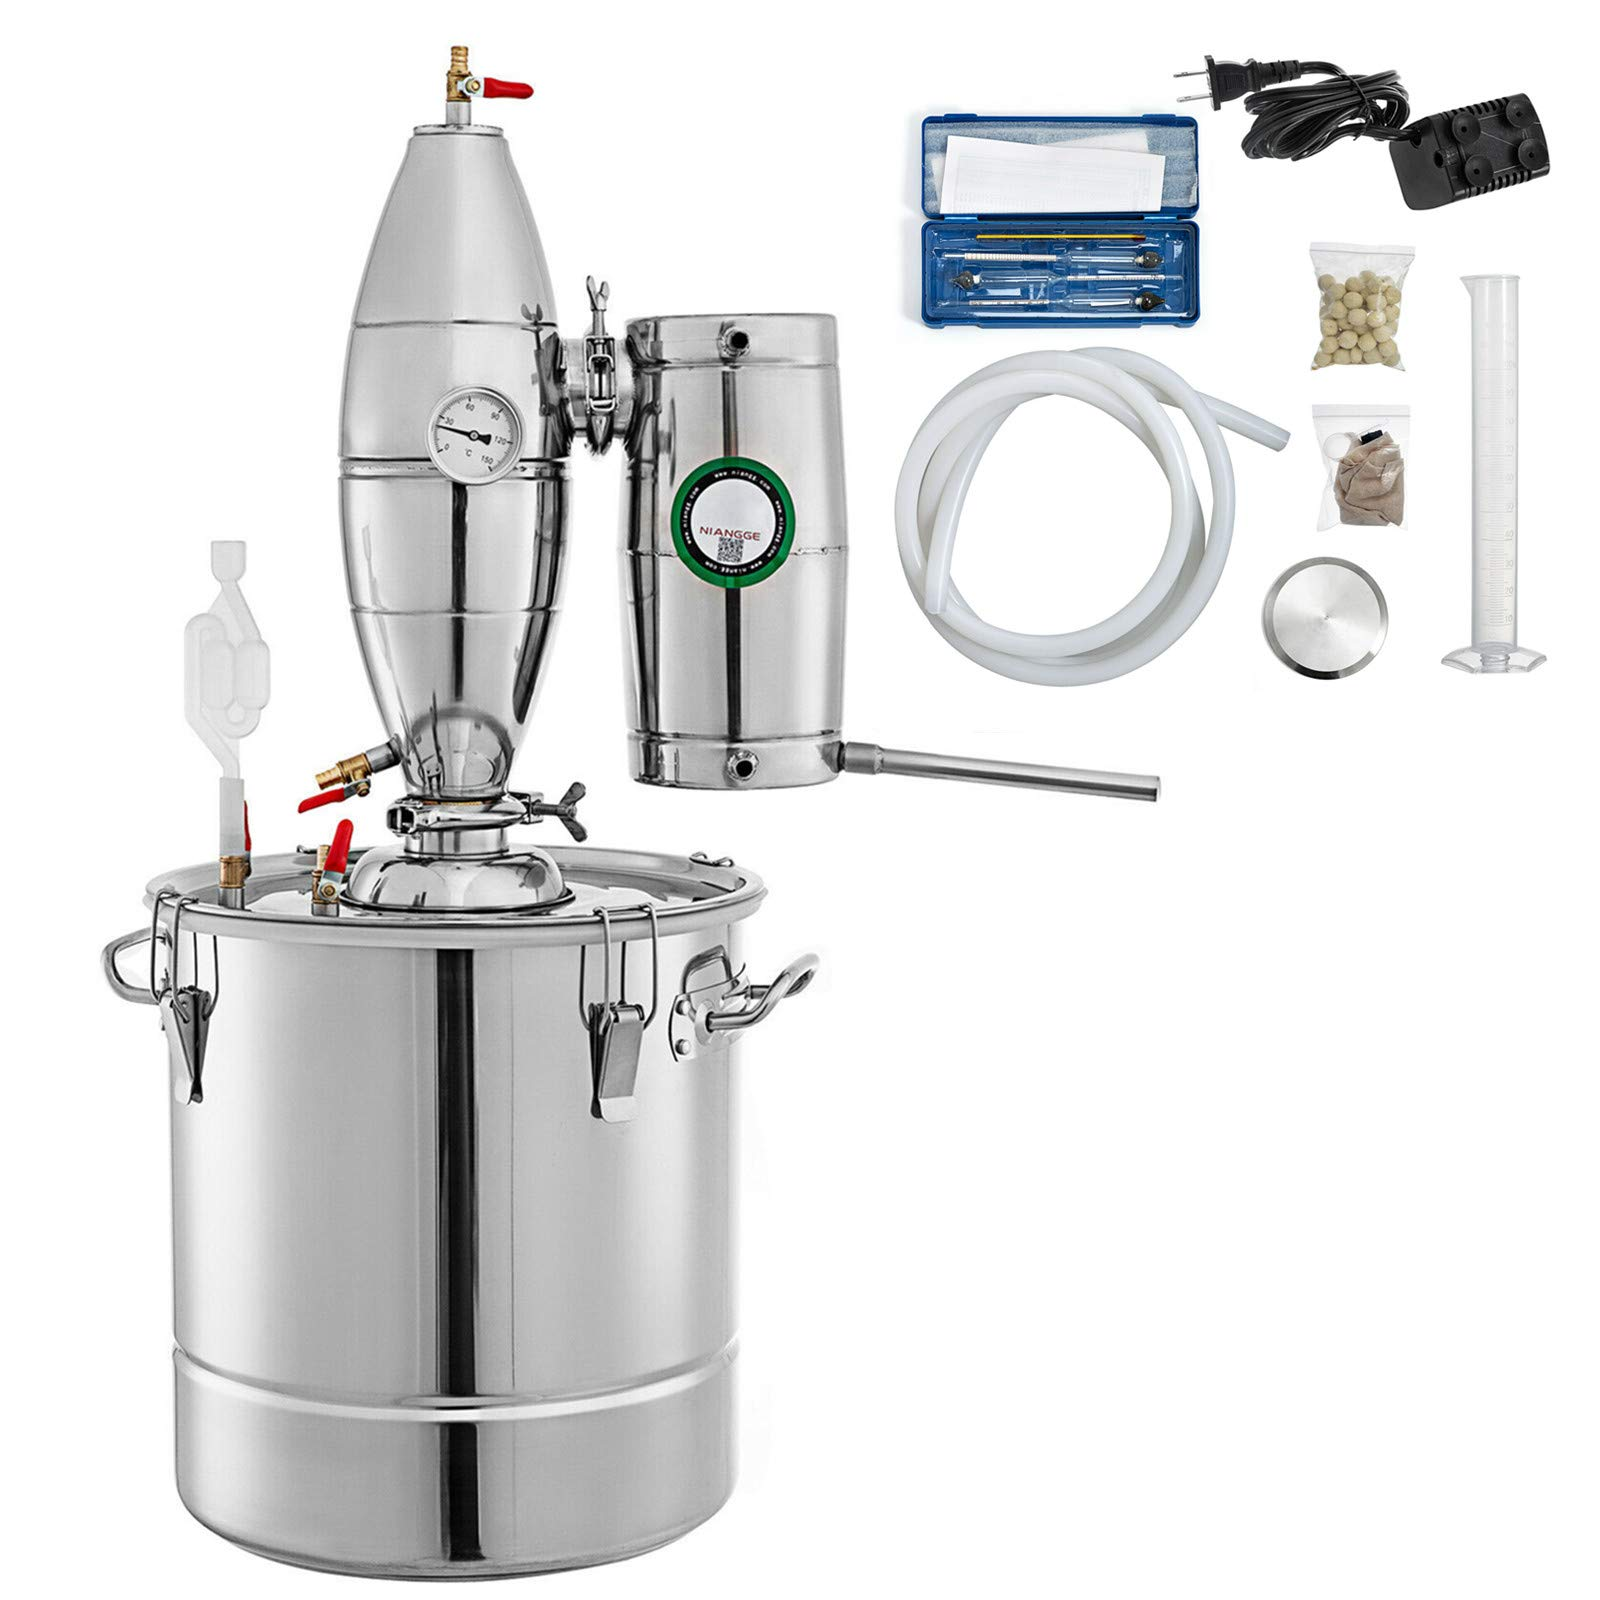 SHZOND Alcohol Distiller 7.9 Gal 30 Liters Wine Making Kit 304 Stainless Steel Moonshine Still Kit with Thermometer (7.9 Gal / 30 Liters)